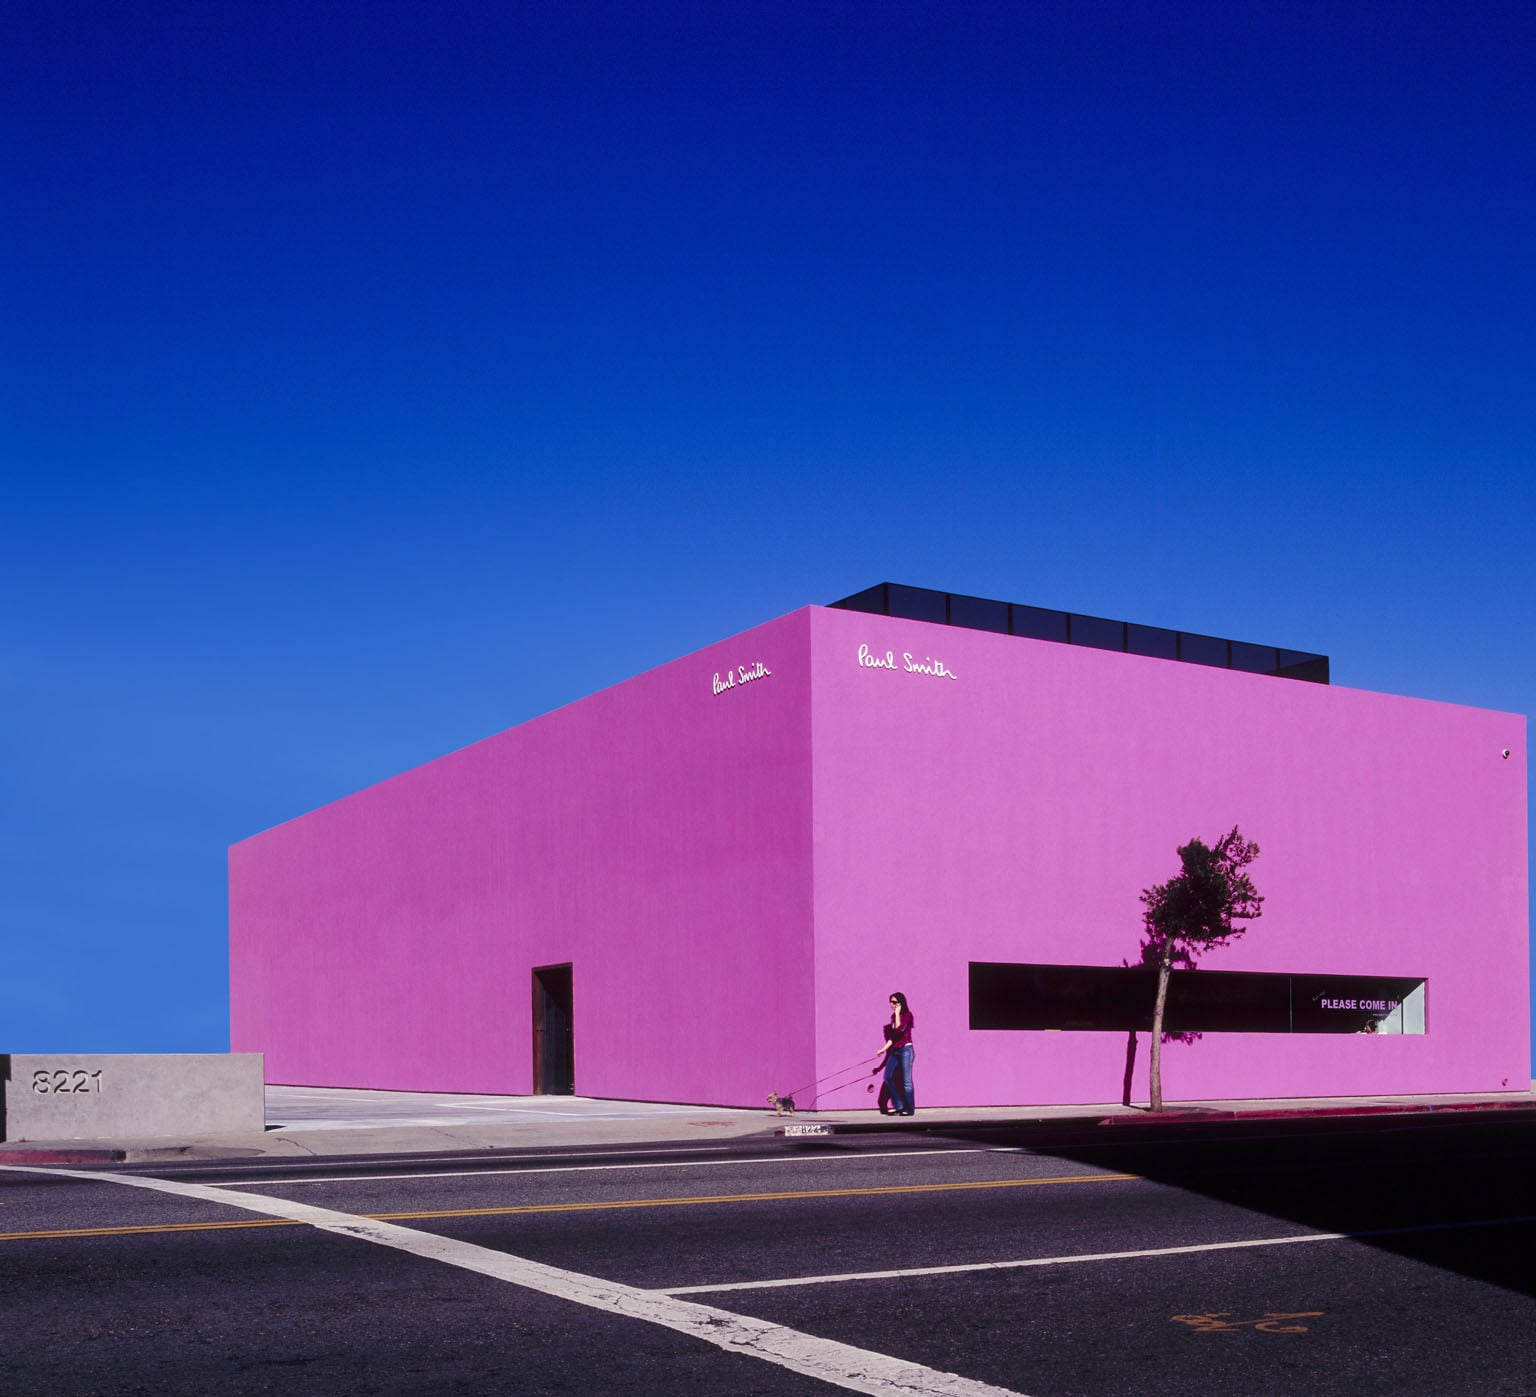 Paul Smith store, Melrose Avenue, Los Angeles